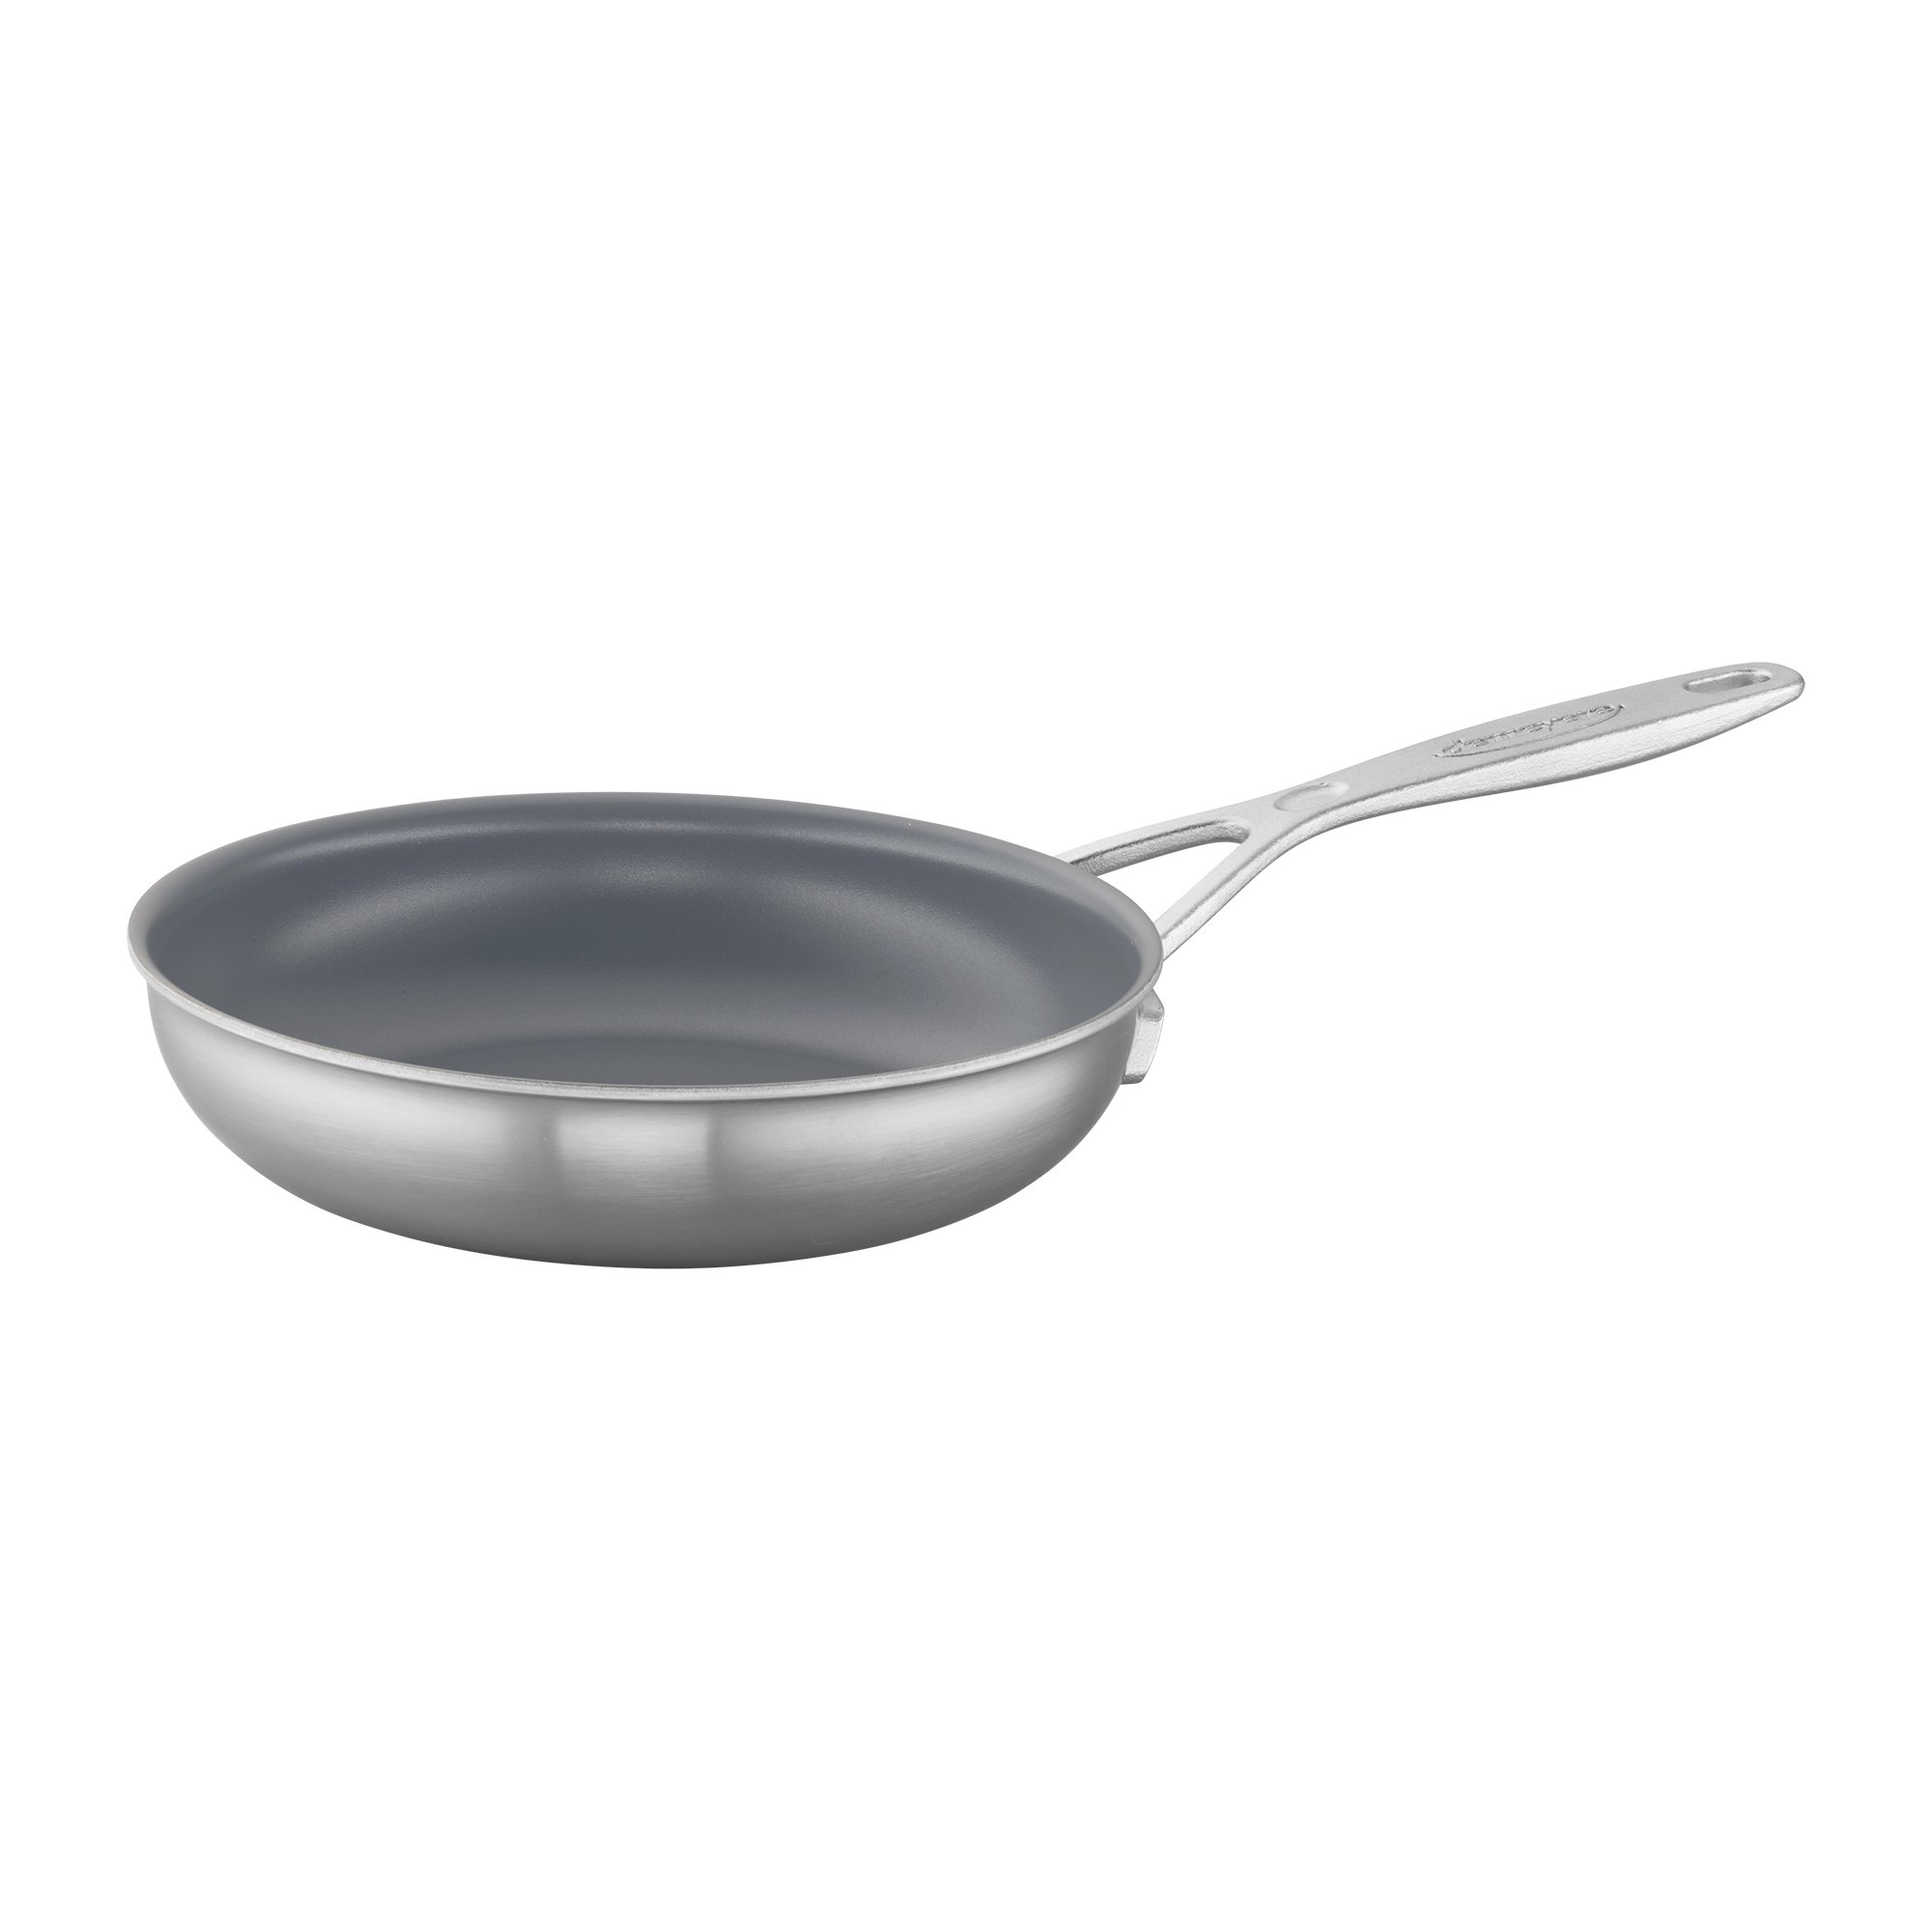 Demeyere Industry 5-Ply 8'' Stainless Steel Ceramic Nonstick Fry Pan